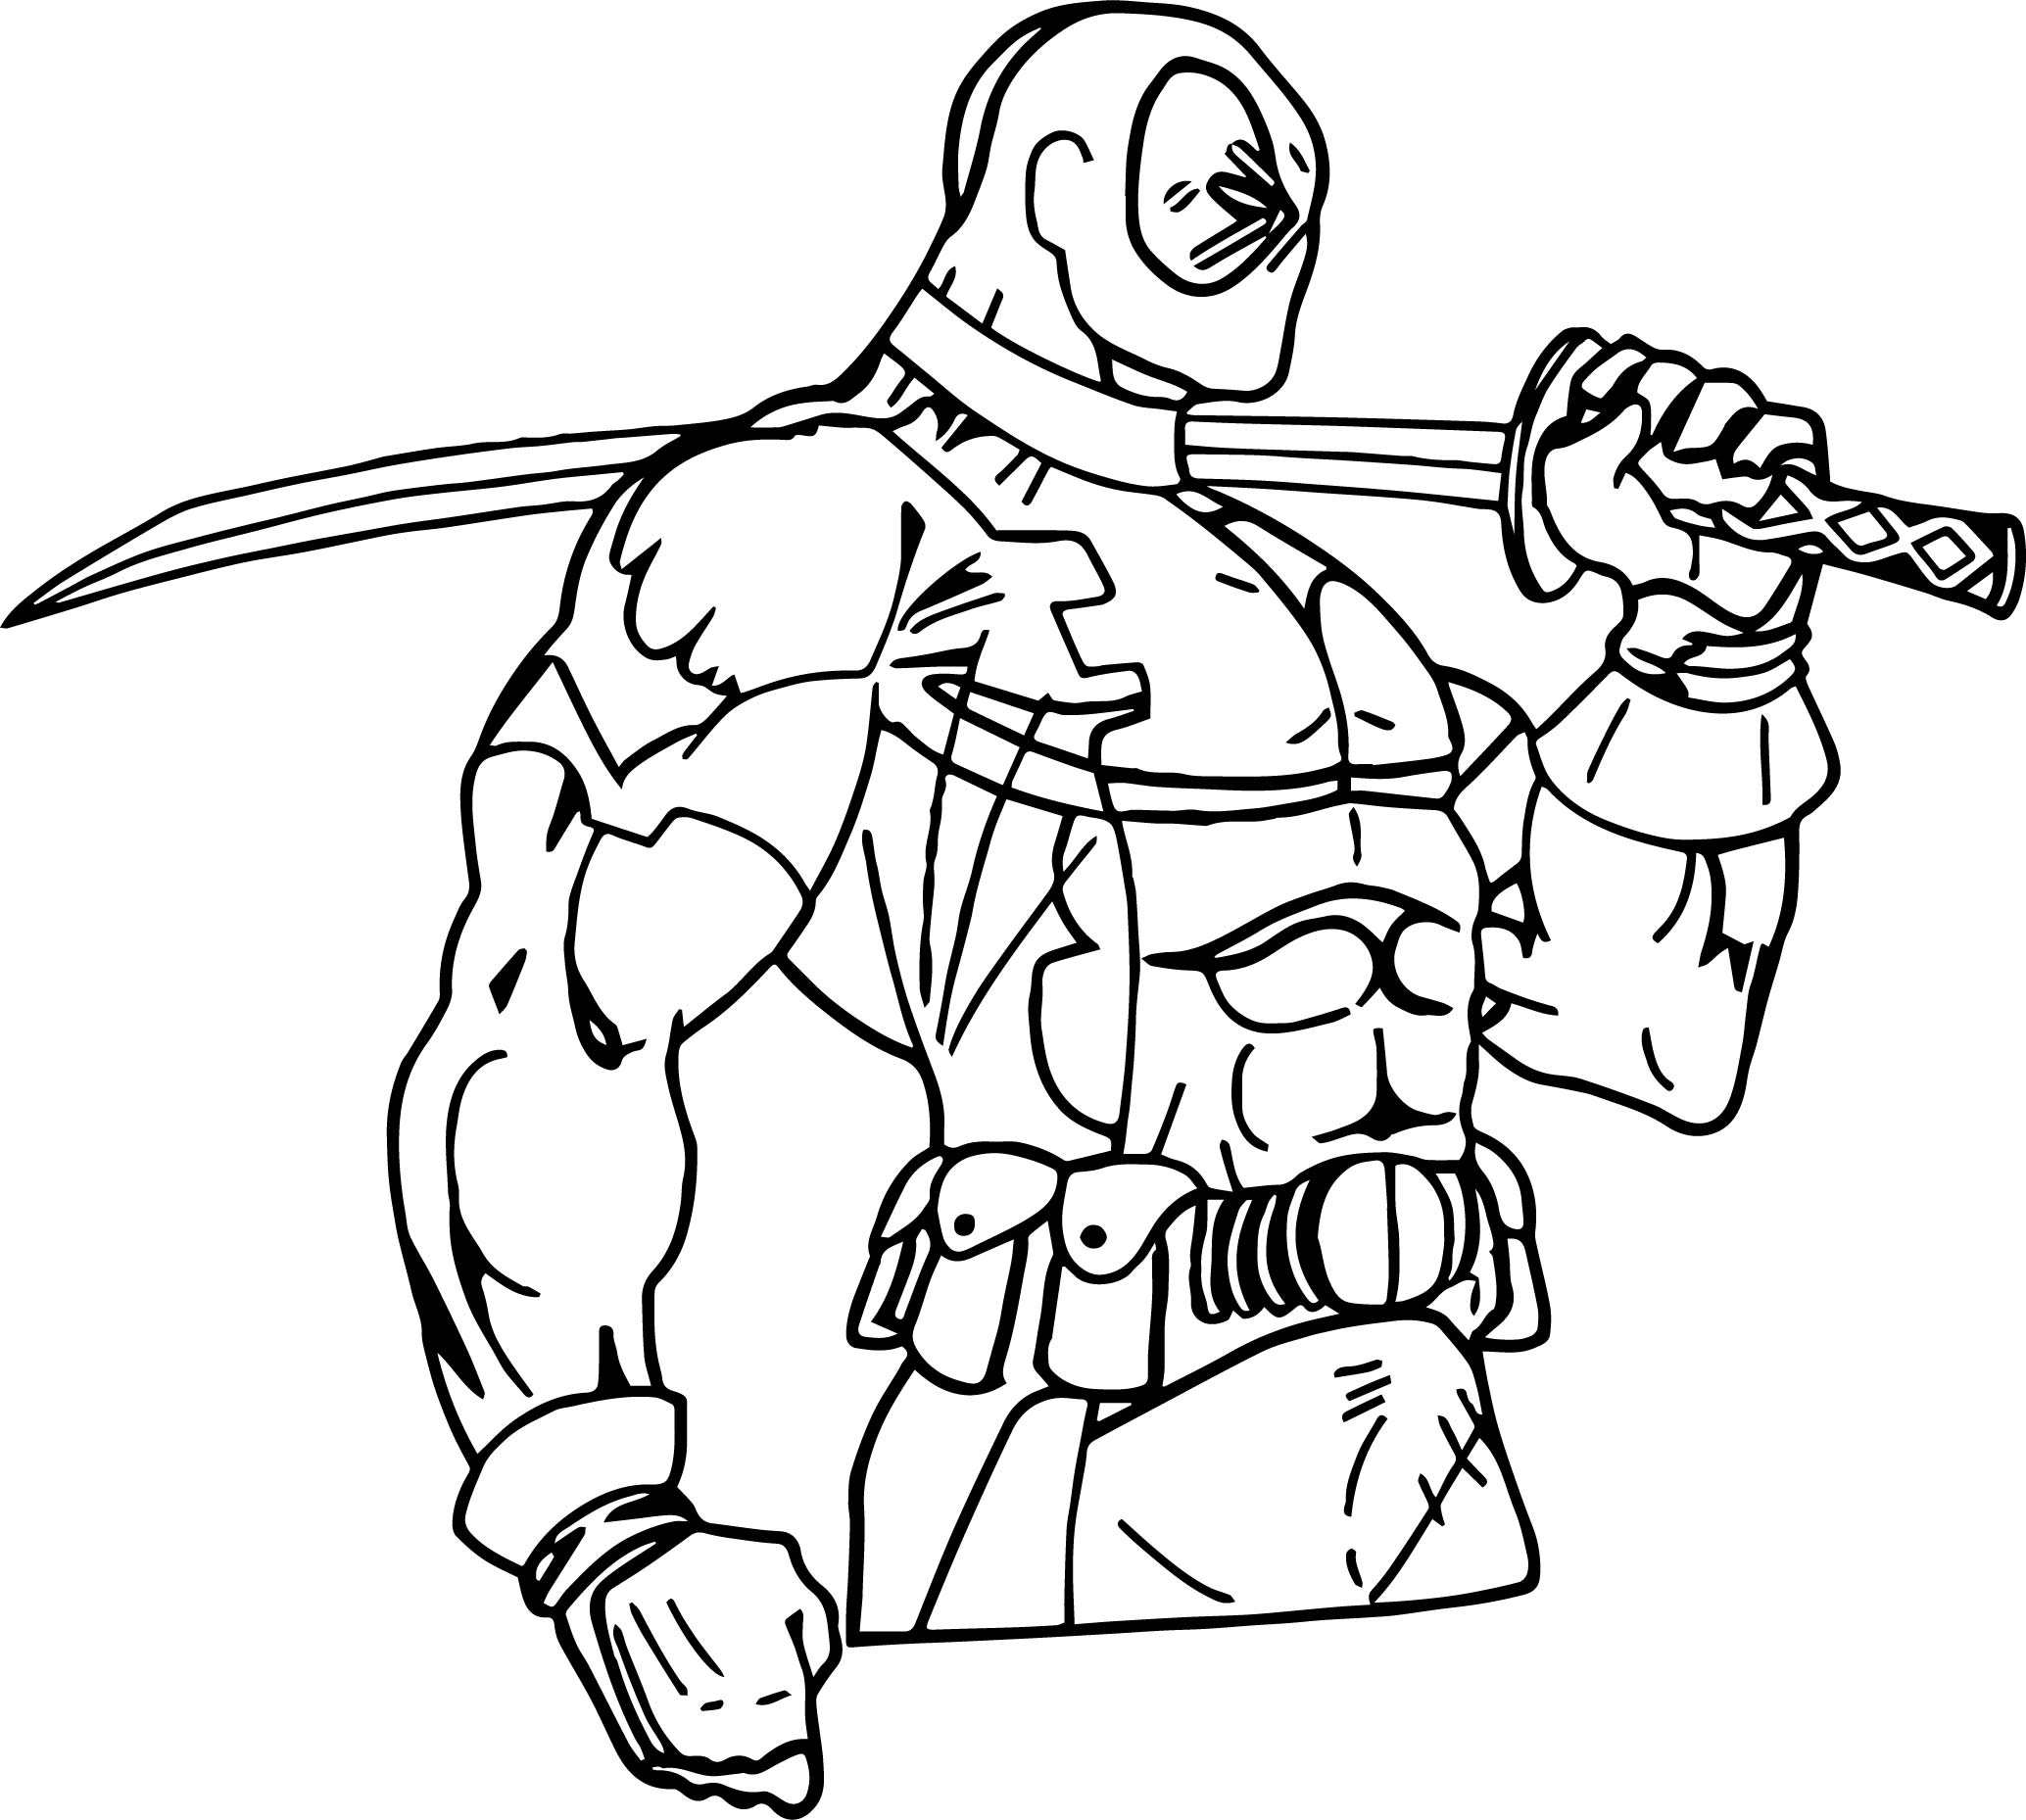 Deadpool Side View Coloring Page